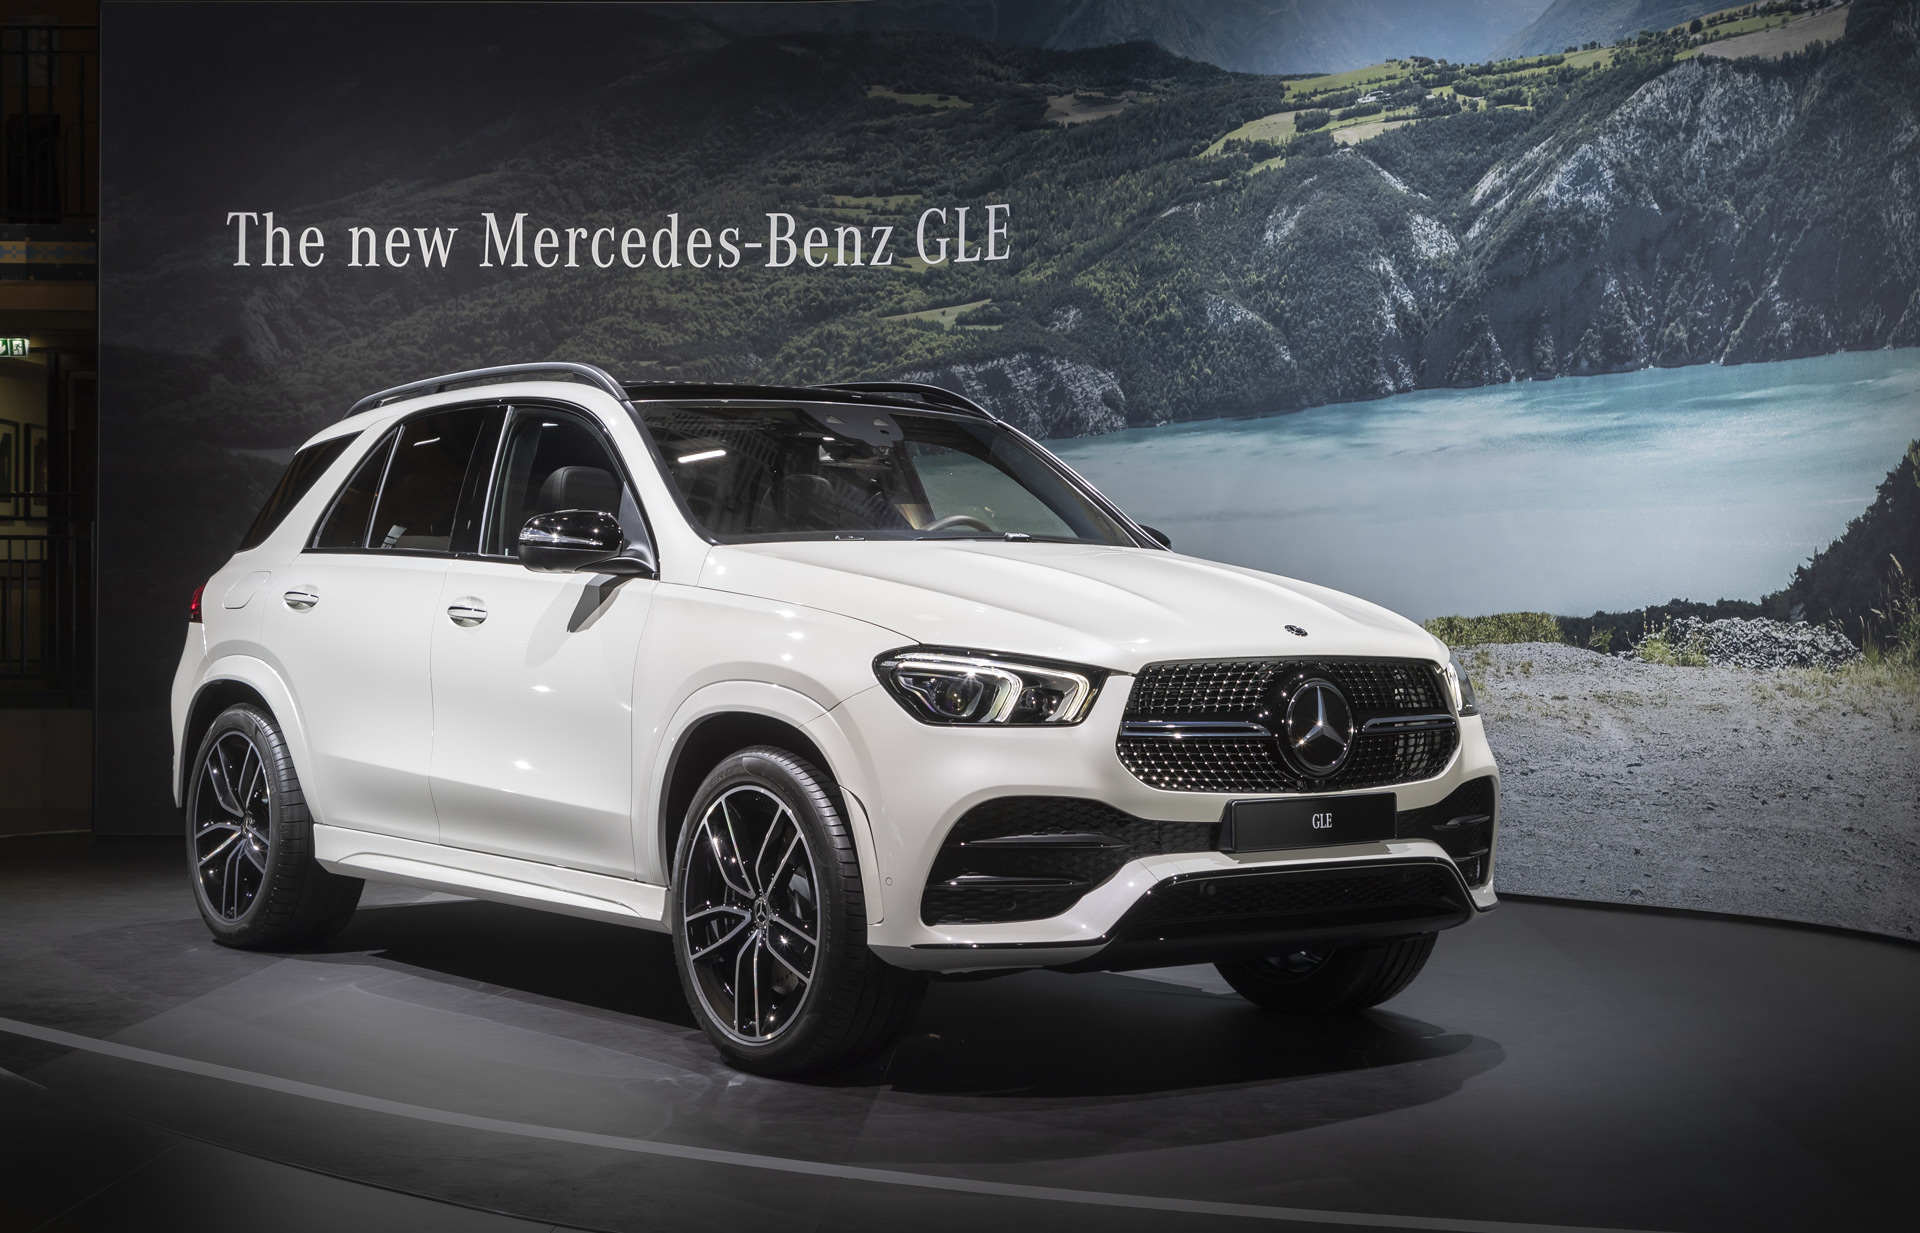 2020 Mercedes Benz Gle Plug In Hybrid To Have 60 Miles Of Electric